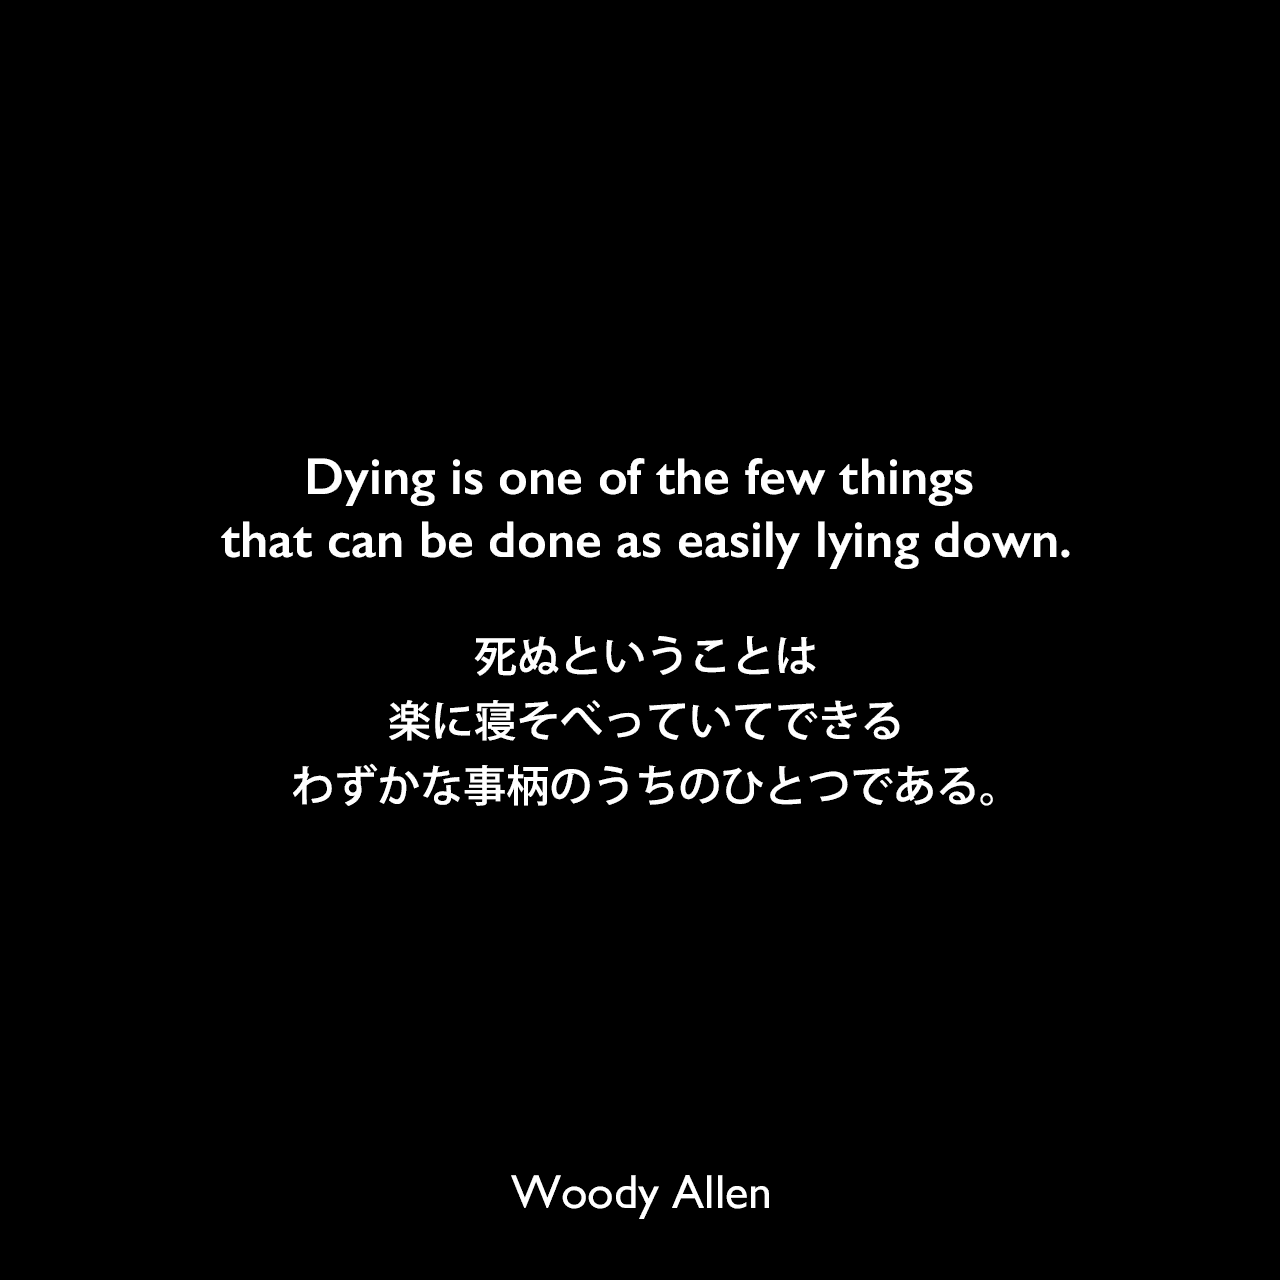 Dying is one of the few things that can be done as easily lying down.死ぬということは、楽に寝そべっていてできるわずかな事柄のうちのひとつである。Woody Allen